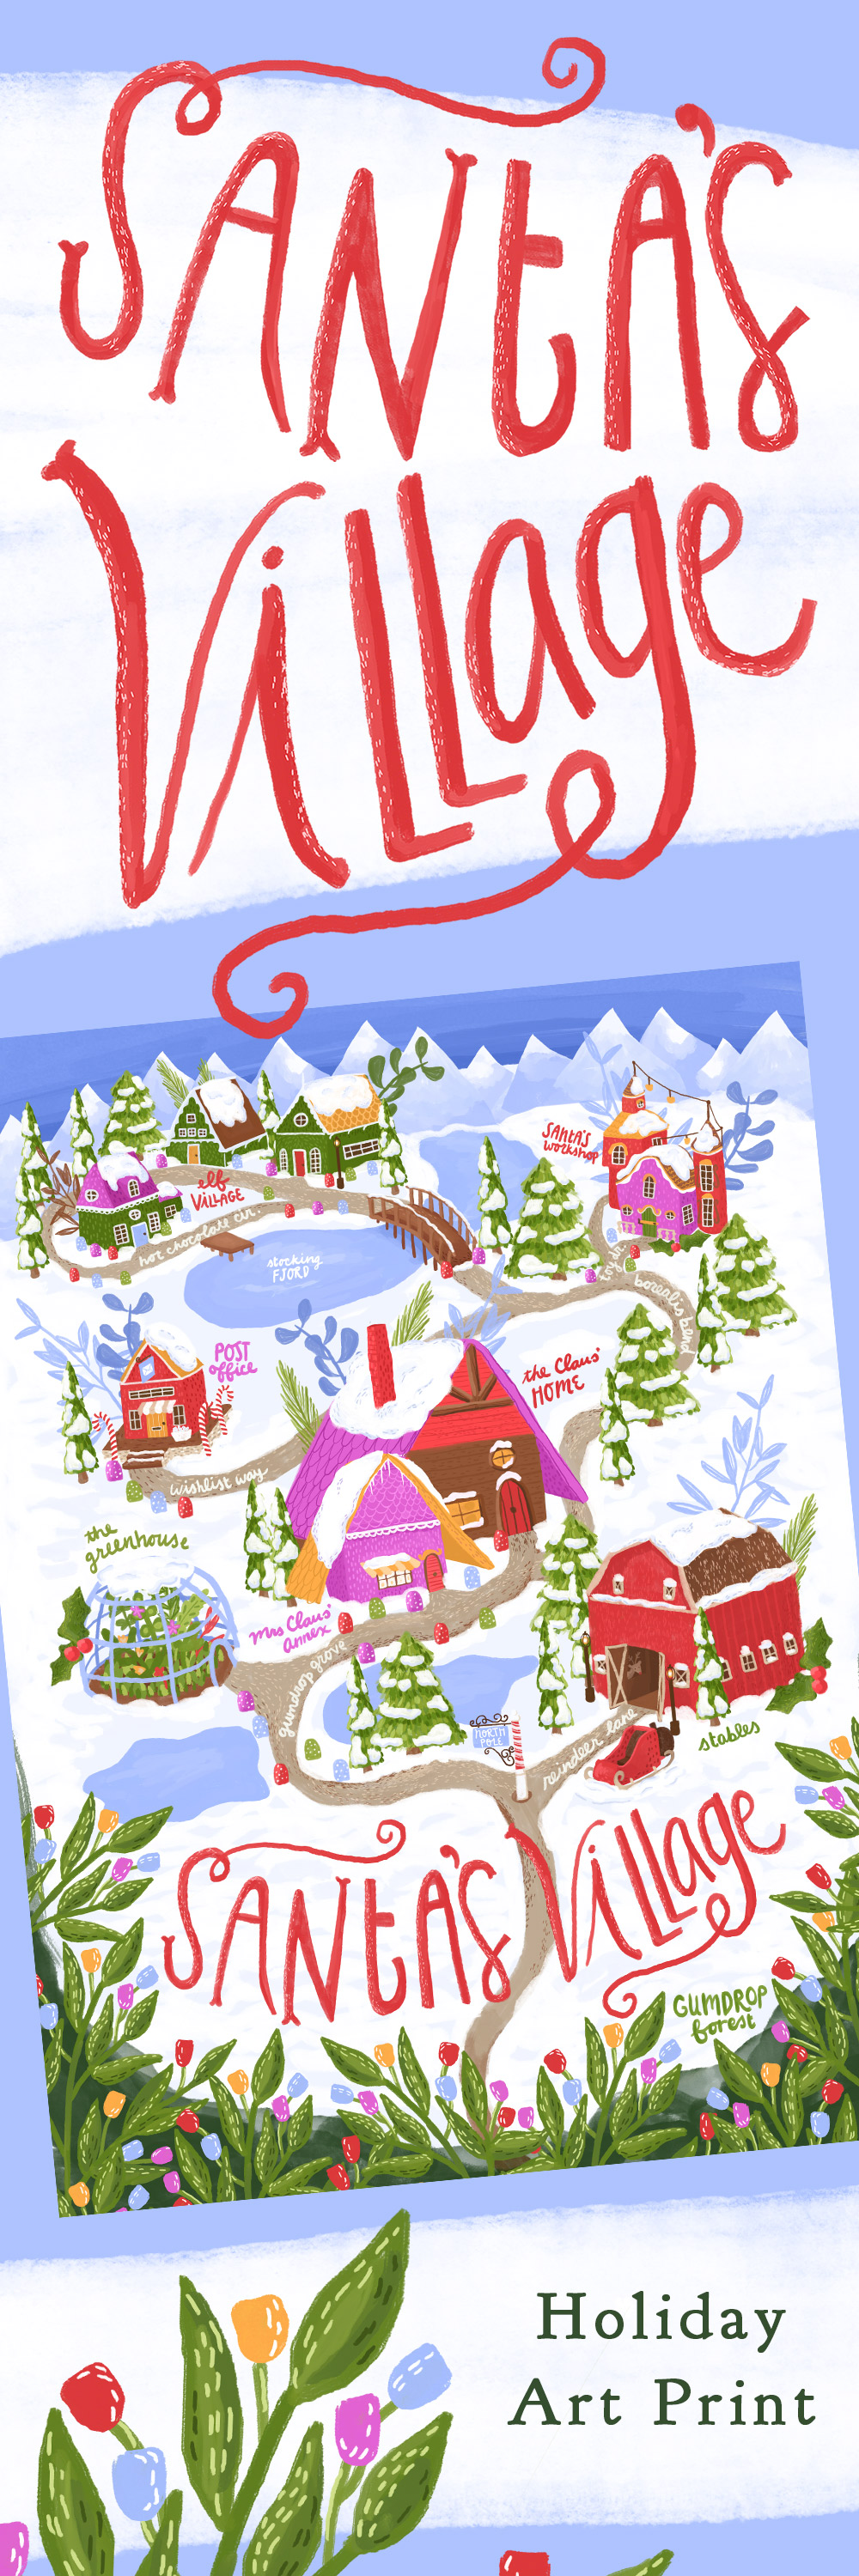 santa's village art print, elf village, santa's workshop, north pole post office, rudolph the red nosed reindeer art